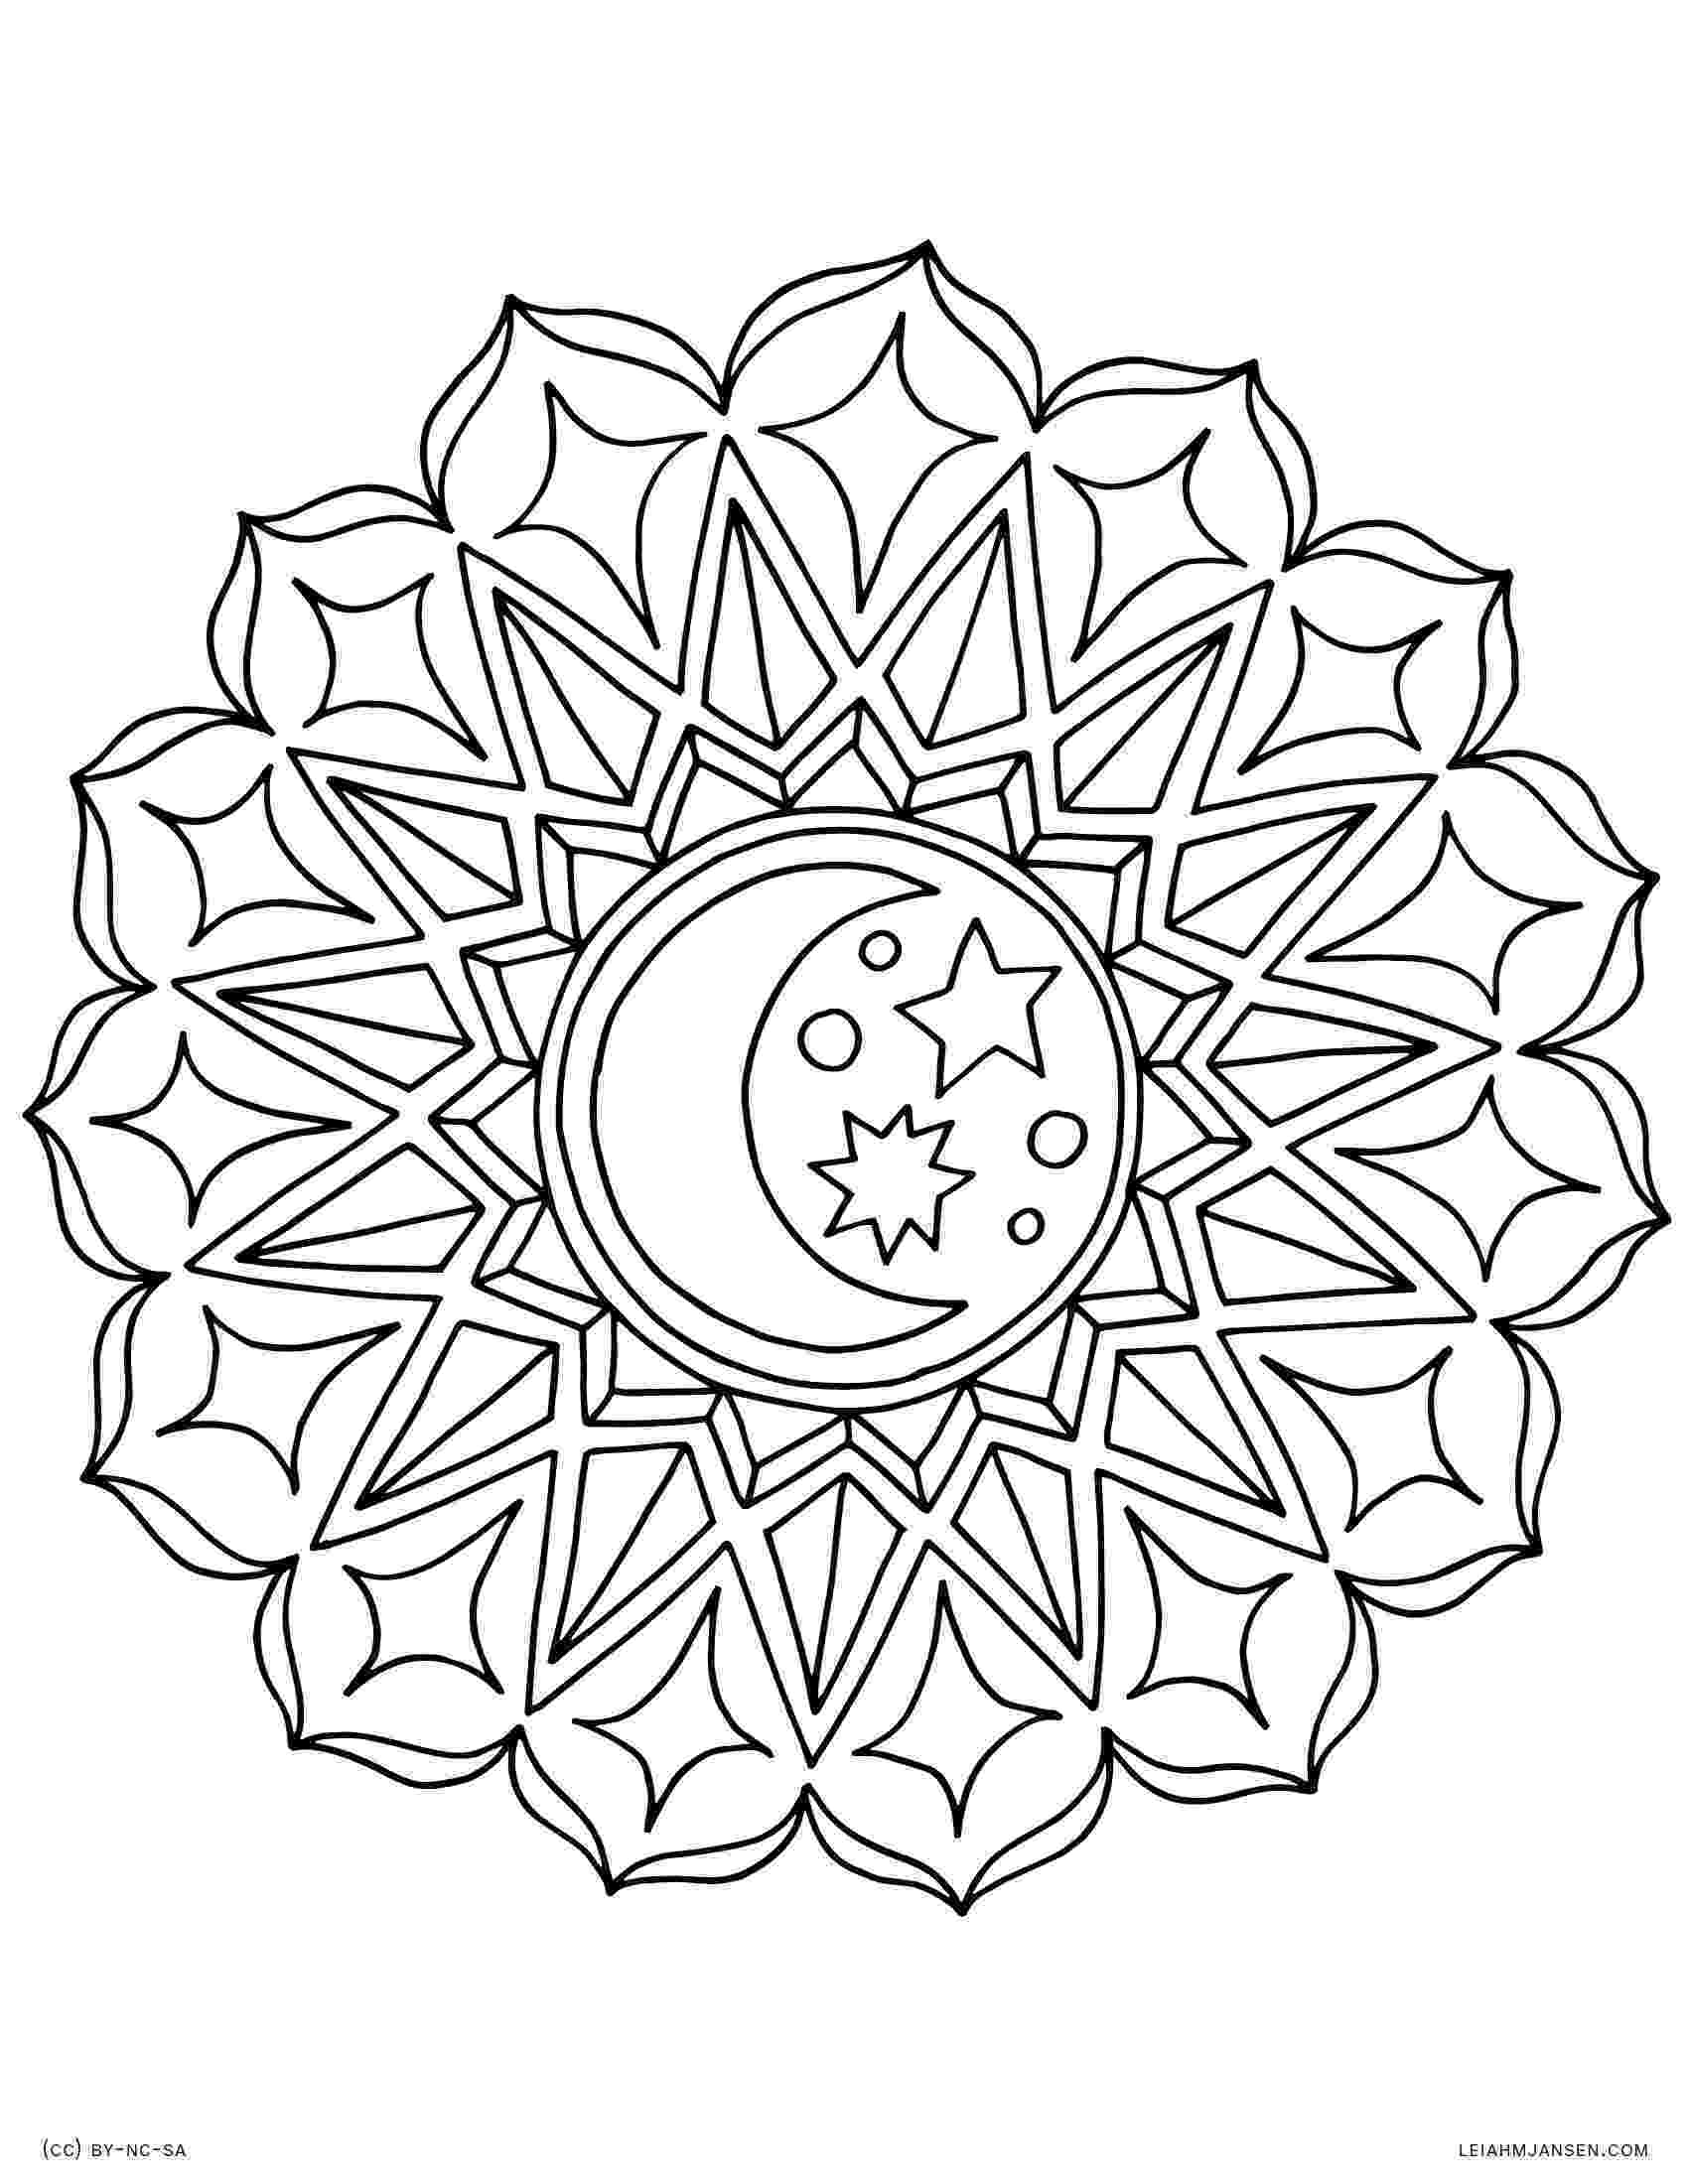 free printable mandalas for adults flower mandala coloring pages best coloring pages for kids adults mandalas for free printable